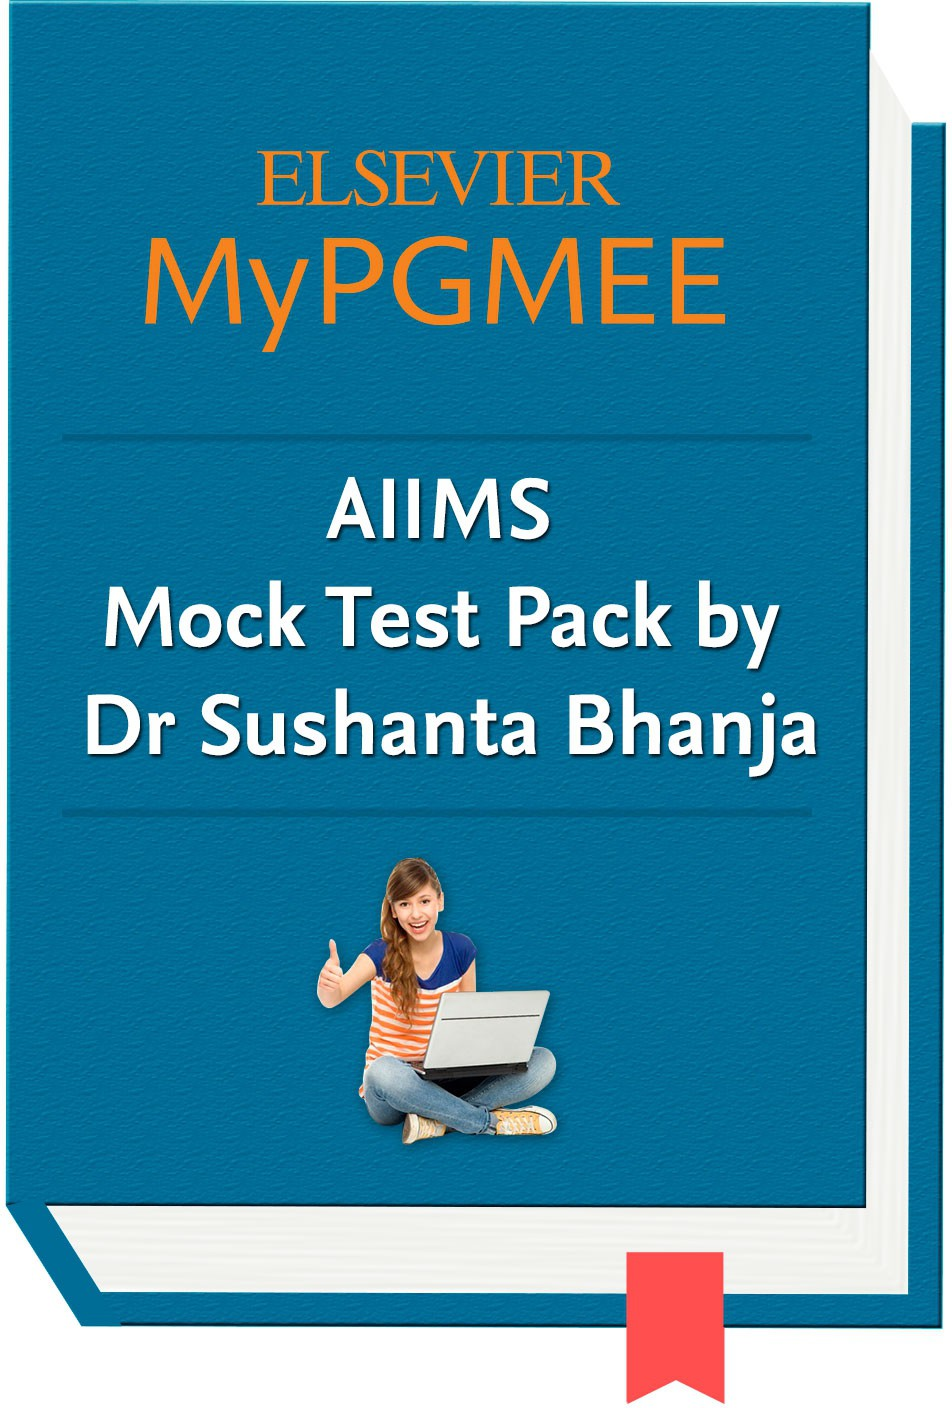 Elsevier MyPGMEE - AIIMS MockTest Pack by Sushnata Bhanja Online Test(Voucher)